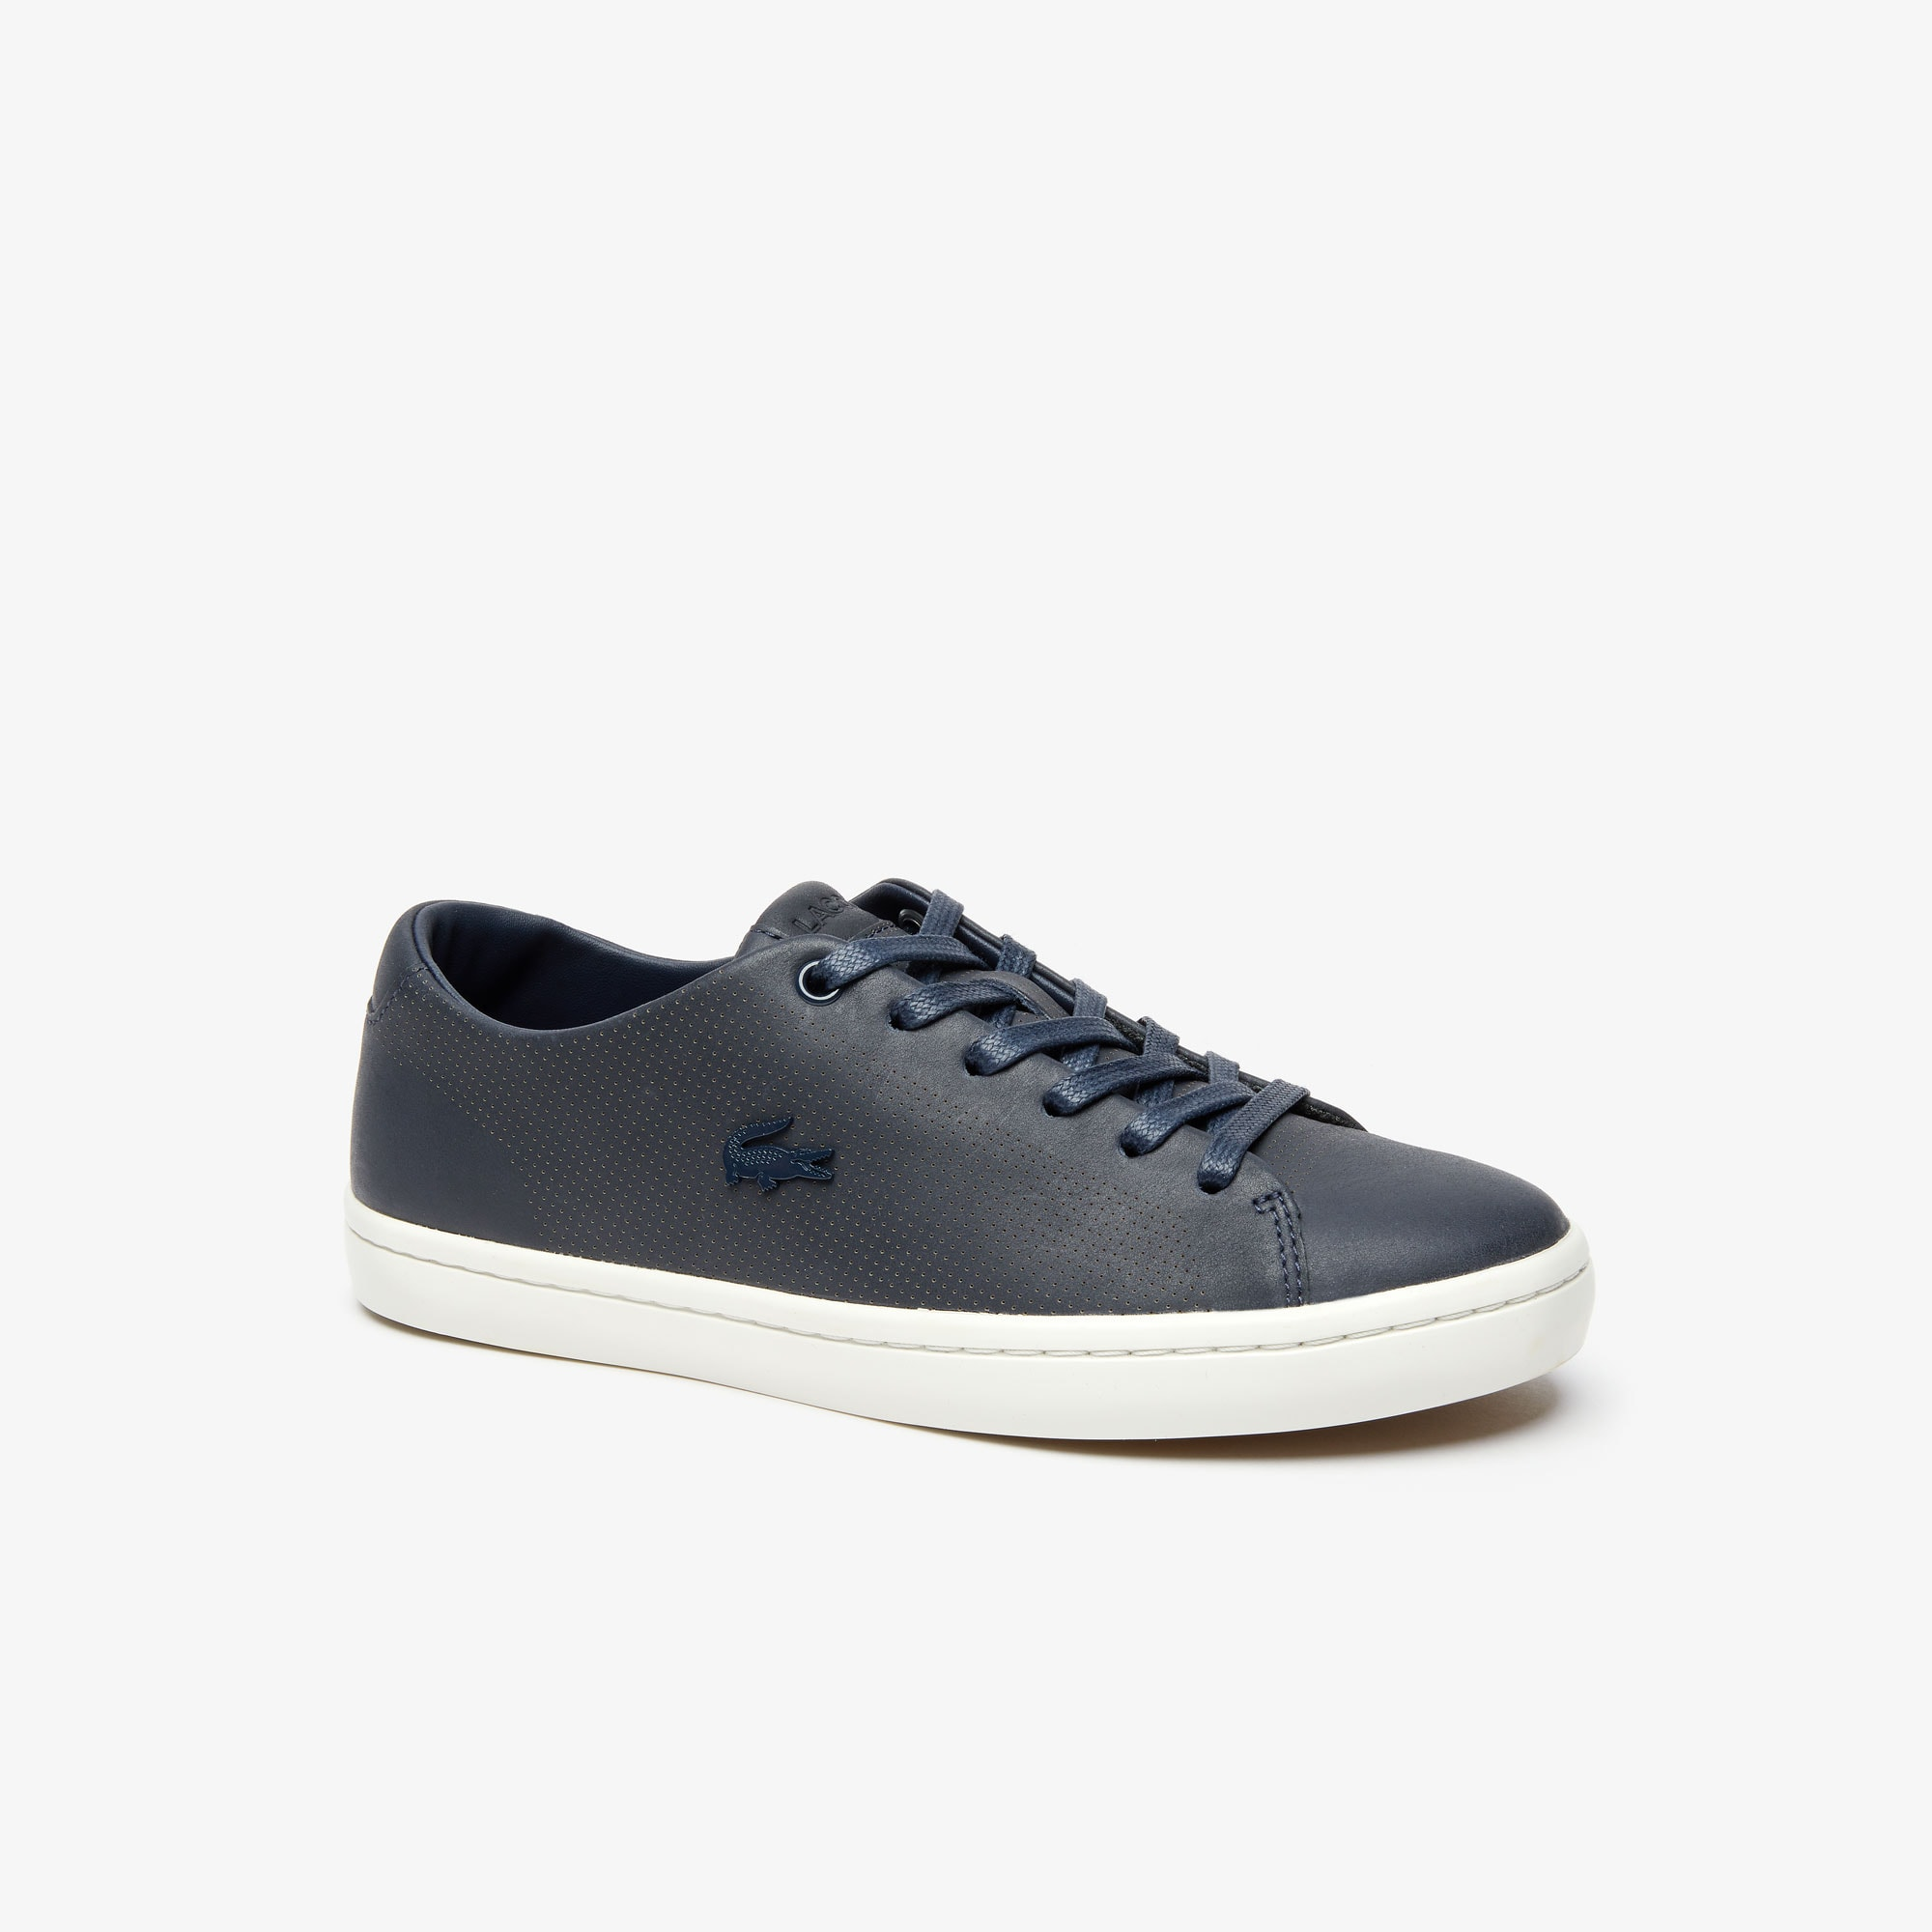 Showcourt 2.0 Leather Sneakers   LACOSTE